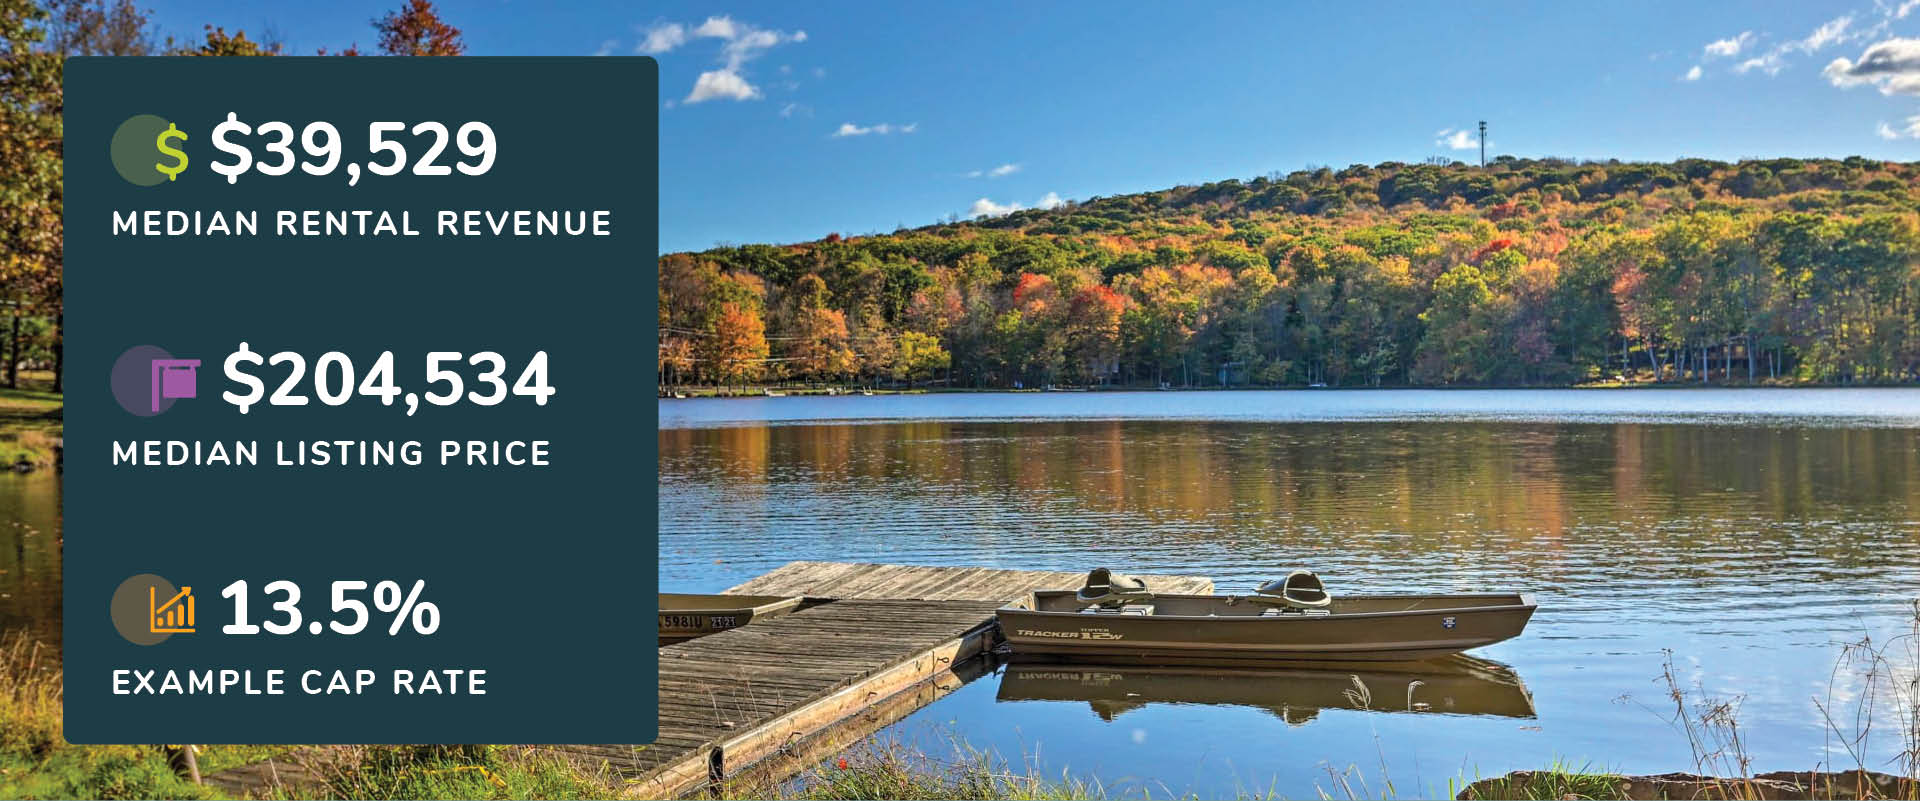 Graphic showing Pocono Lake, Pennsylvania rental revenue, listing price, and cap rate with a picture of a fishing boat on a lake dock